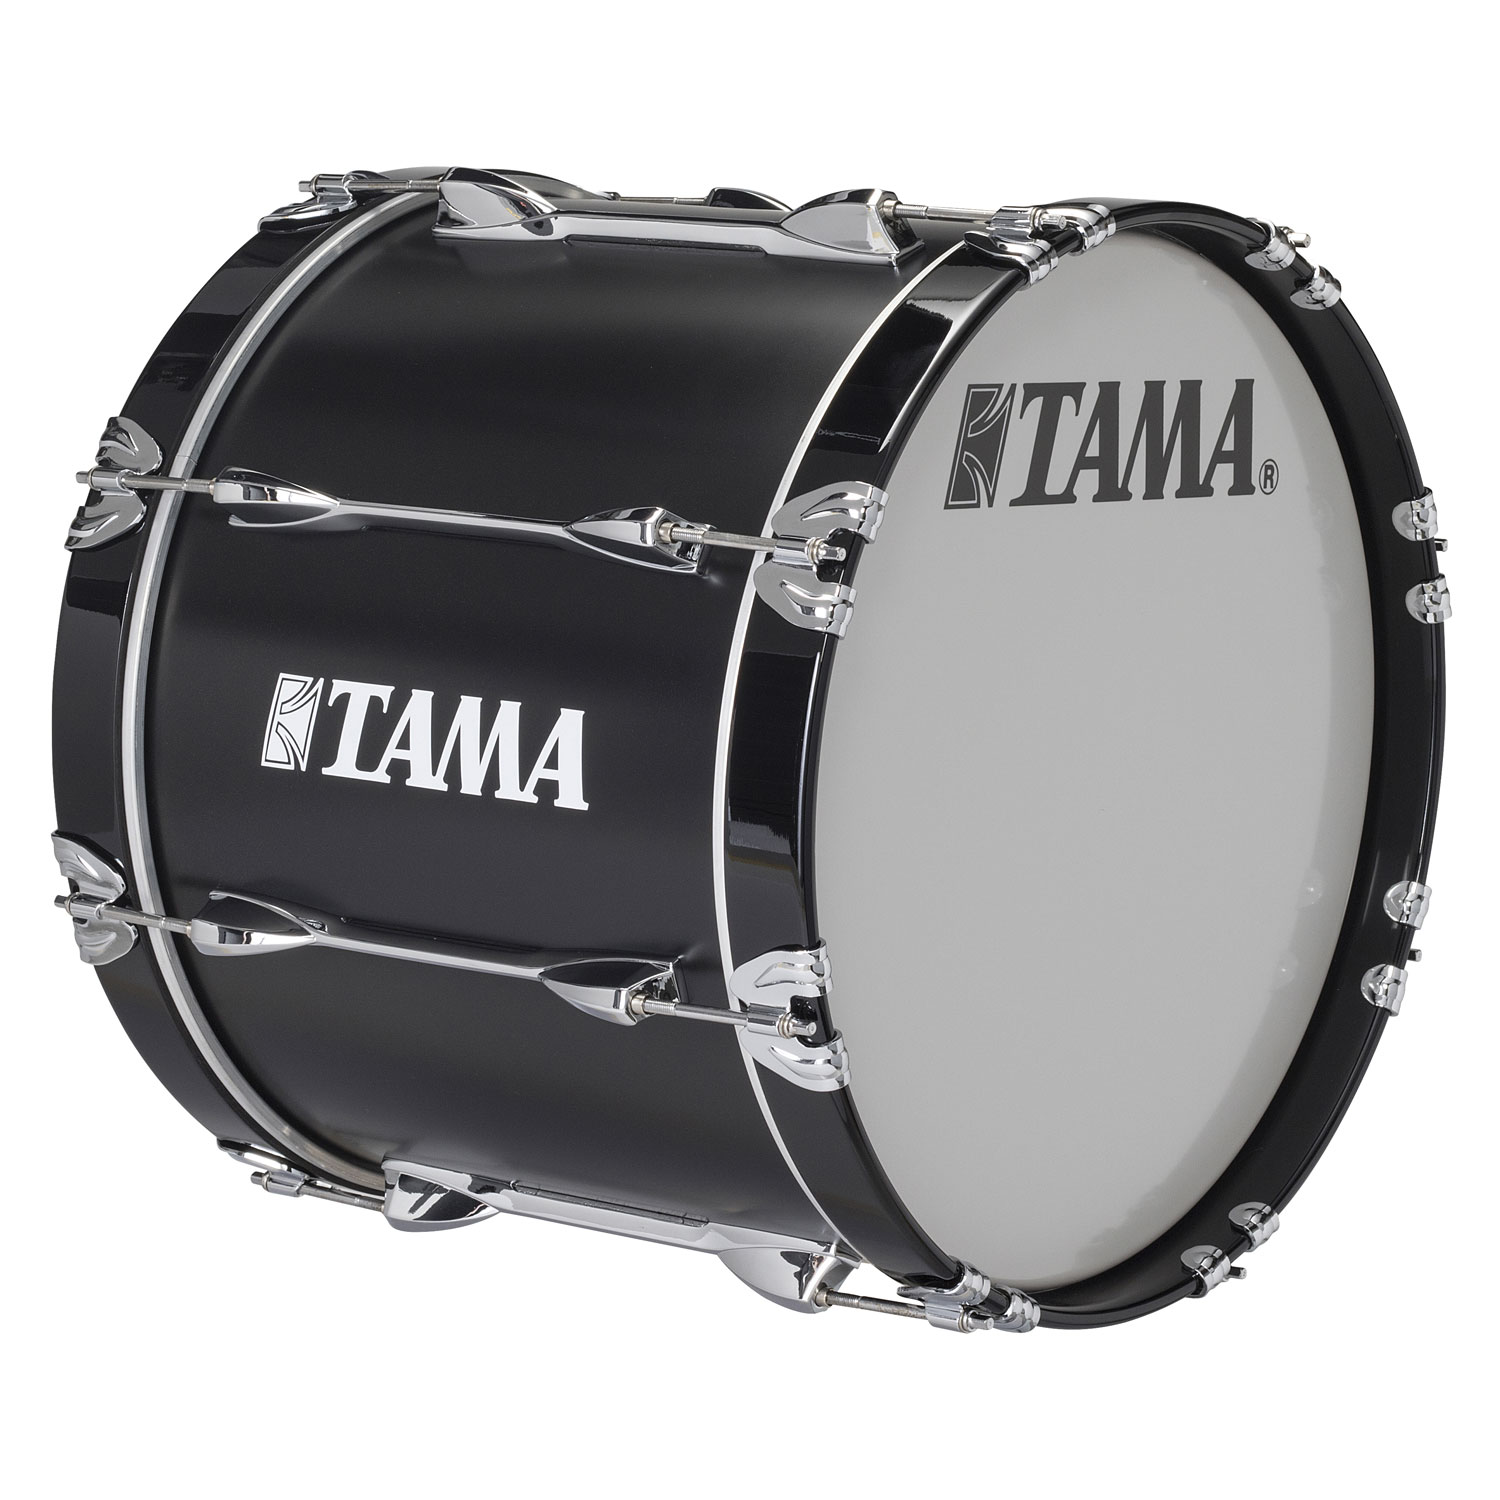 "Tama 20"" StarLight Marching Bass Drum in Satin Black Lacquer"